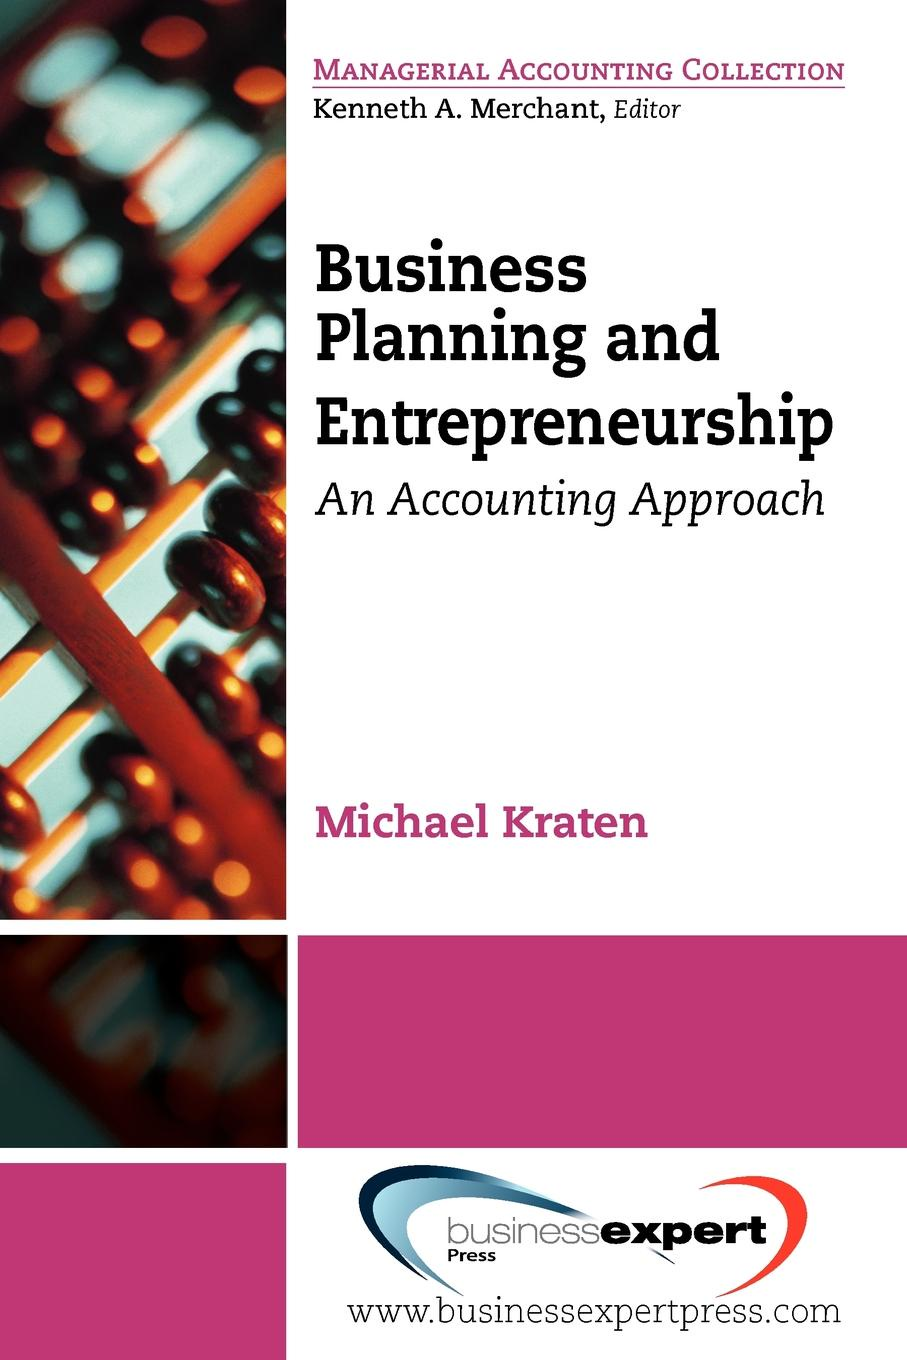 Kraten Michael Kraten, Michael Kraten Business Planning and Entrepreneurship business planning to ease repaying loans